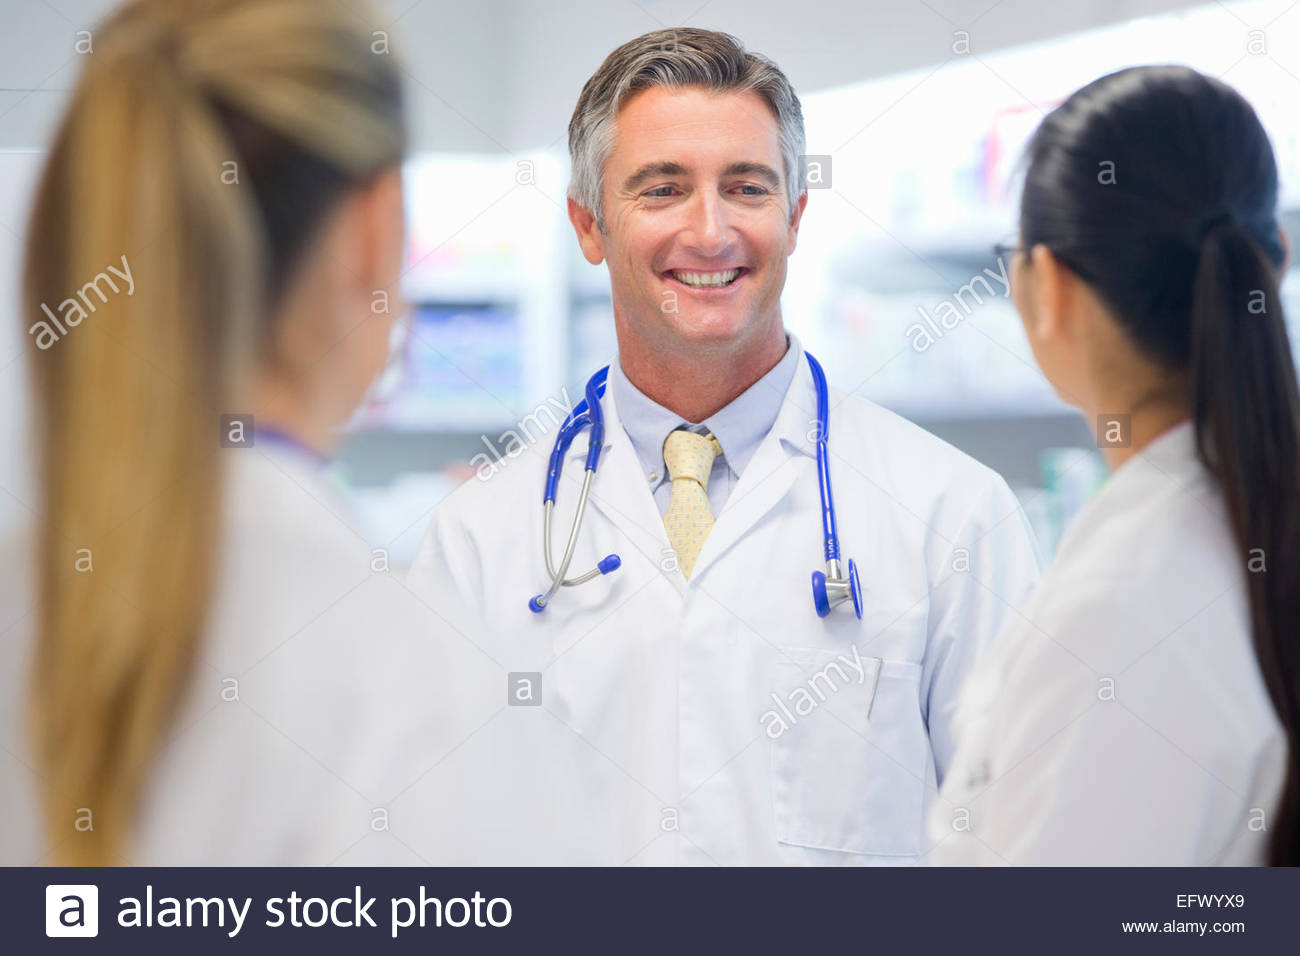 Doctor, wearing stethoscope, smiling at colleagues - Stock Image